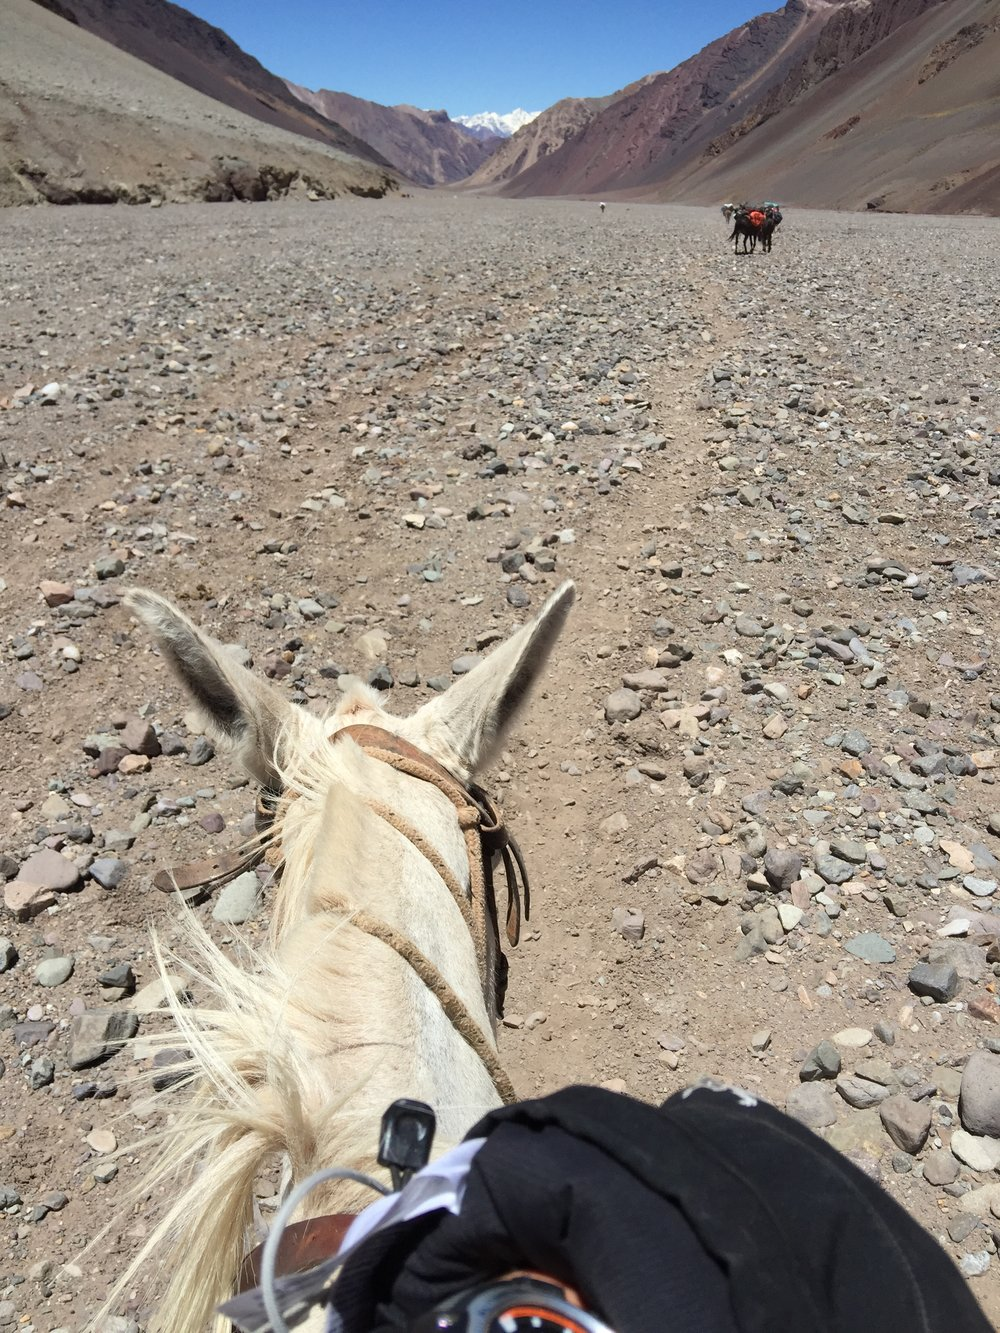 Mule perspective